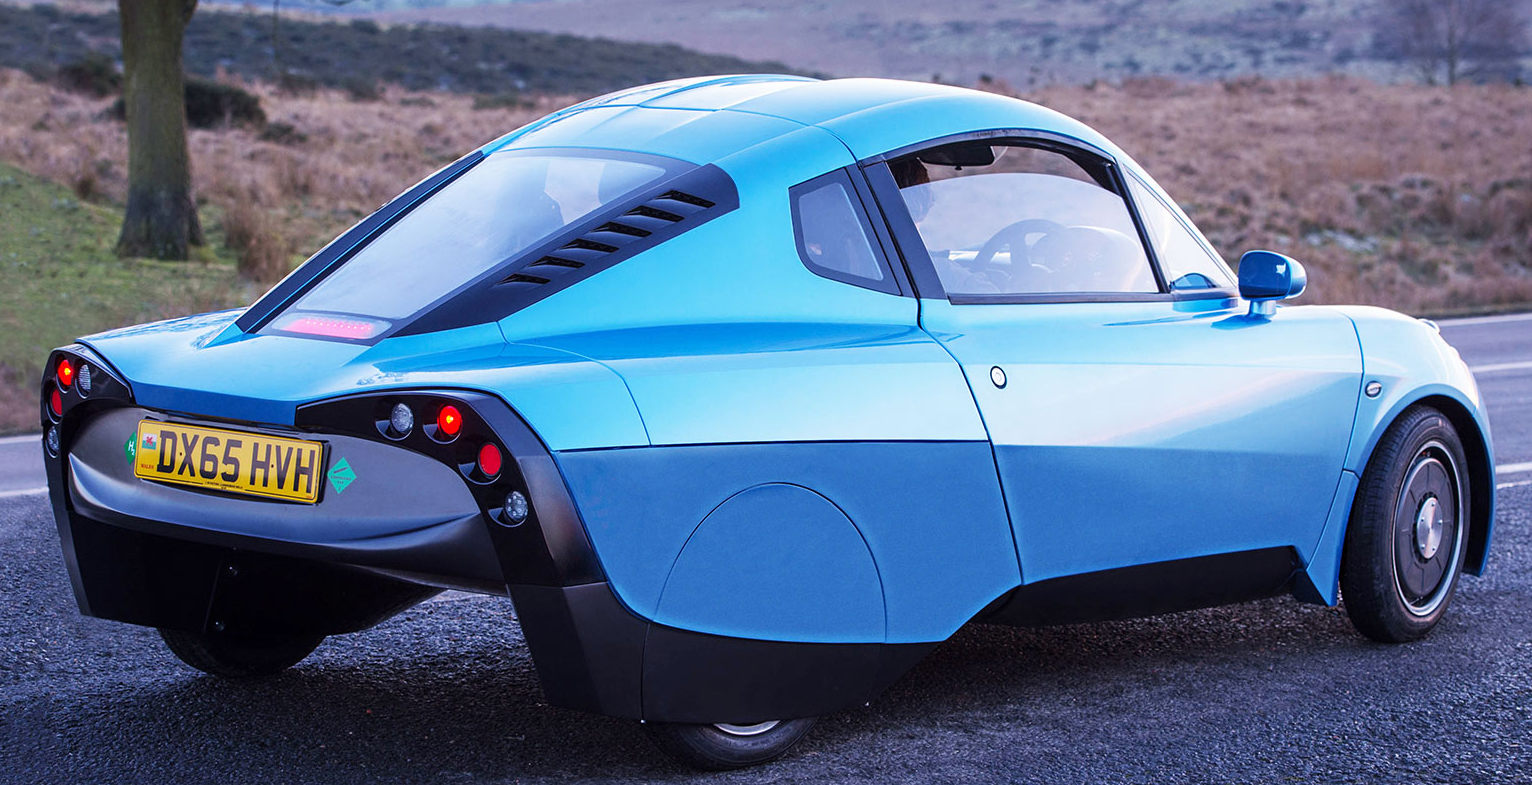 Inhabitat's Week in Green: Riversimple's hydrogen car and more!